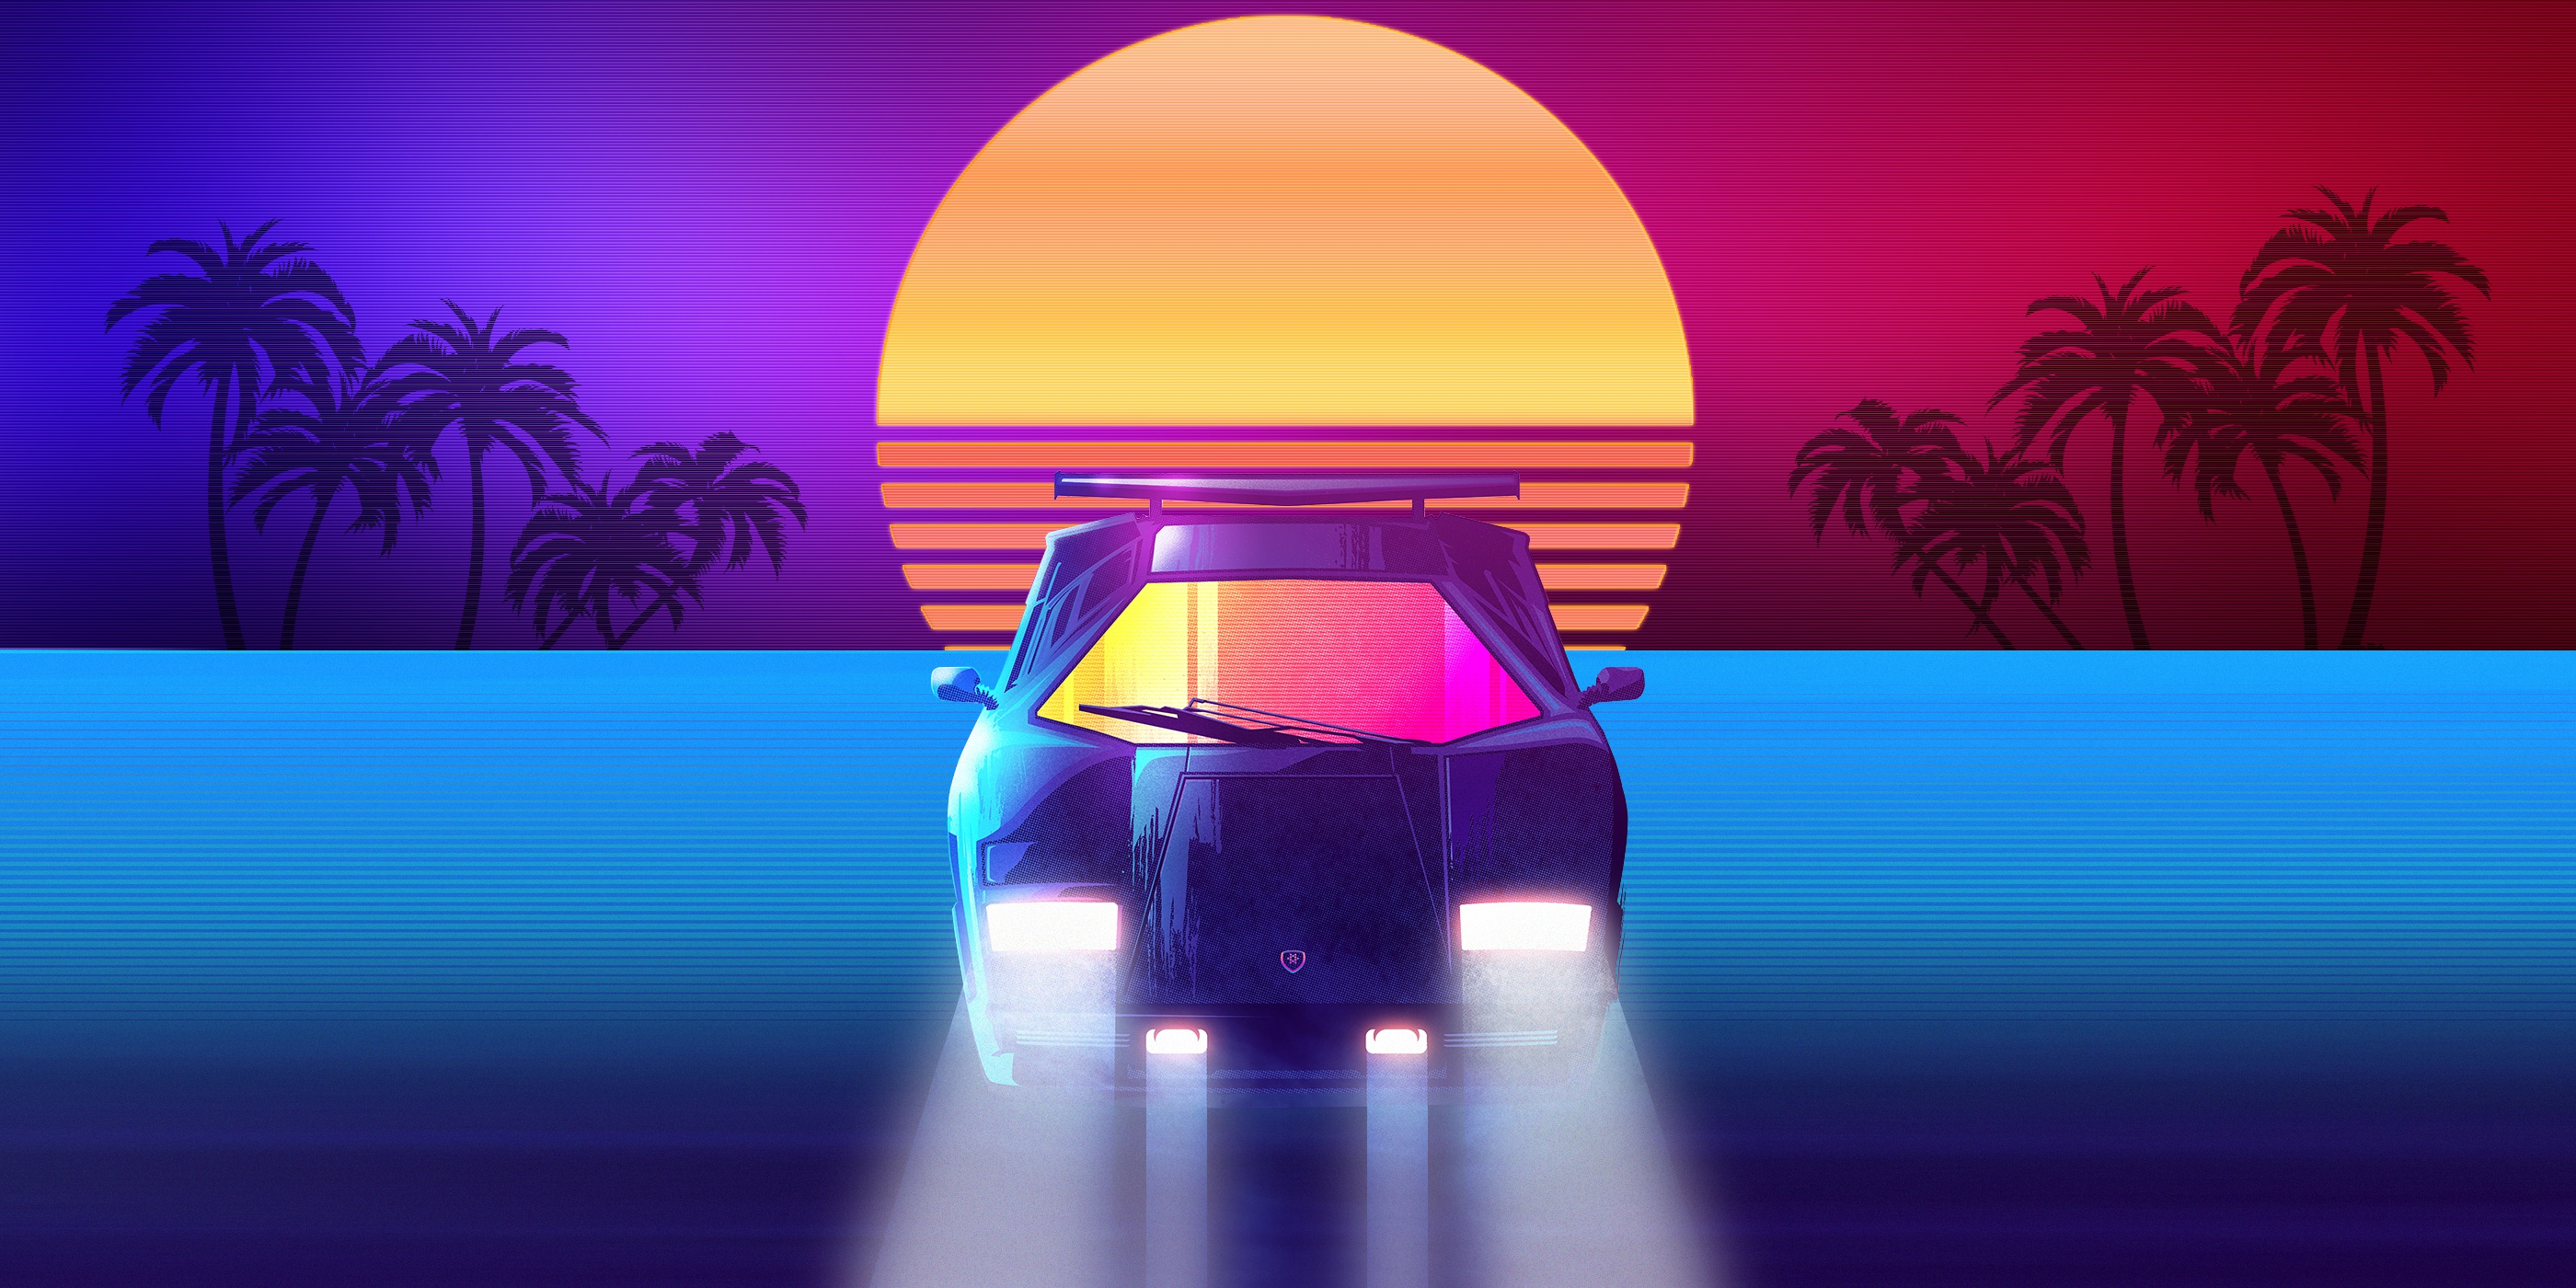 General 2800x1400 synthwave Retrowave Lamborghini car vehicle artwork colorful Lamborghini Countach